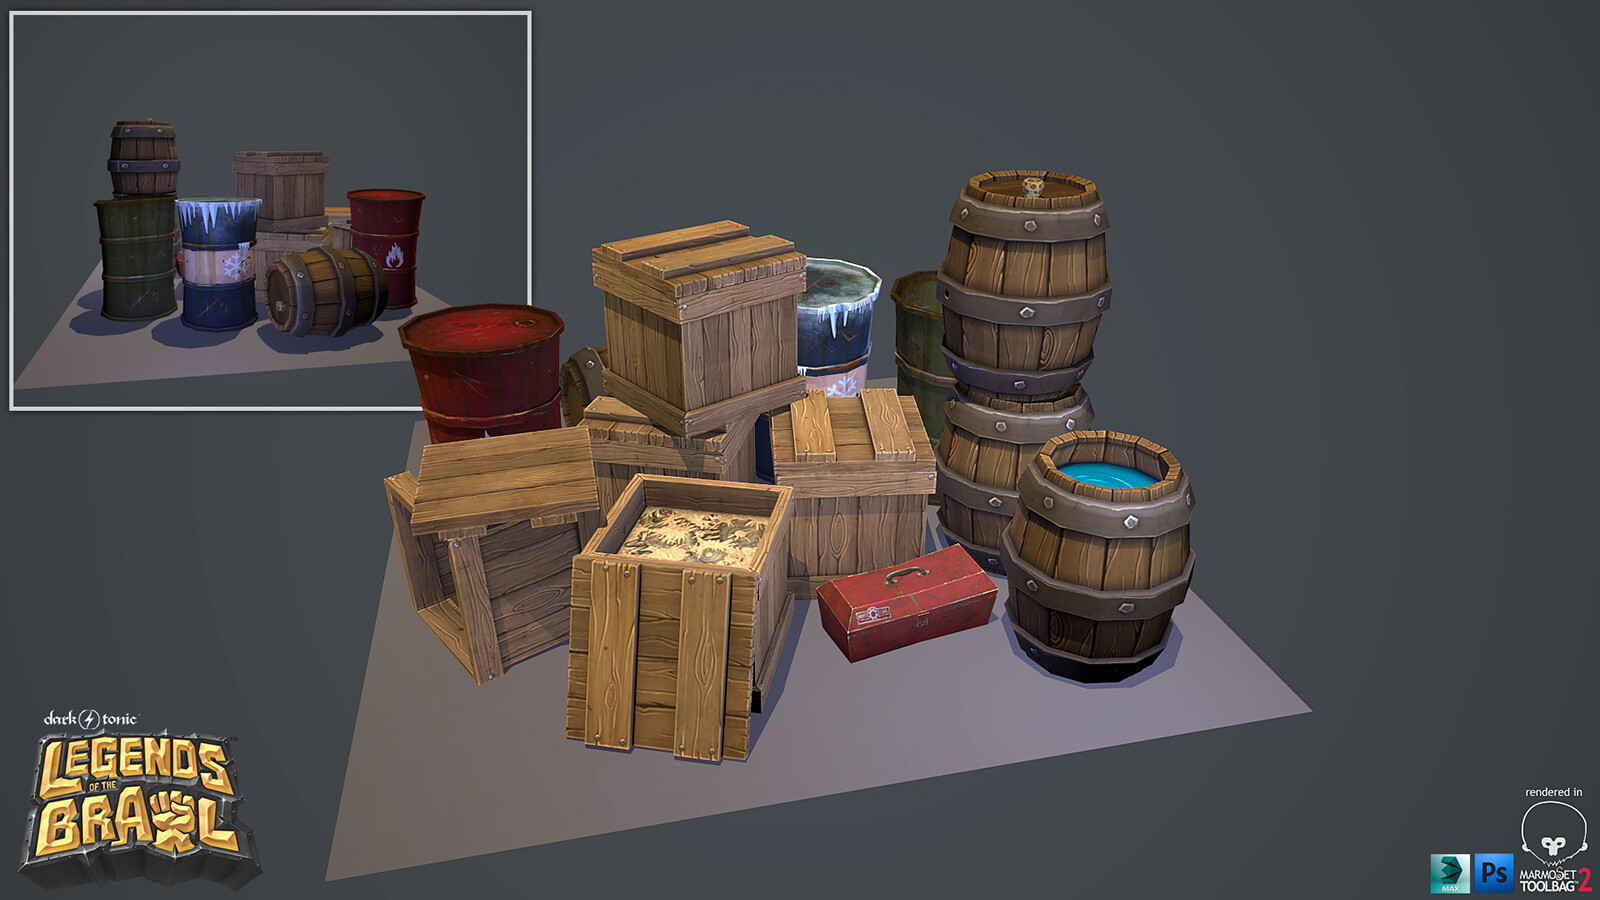 Legends of the Brawl - Props and Texture Work